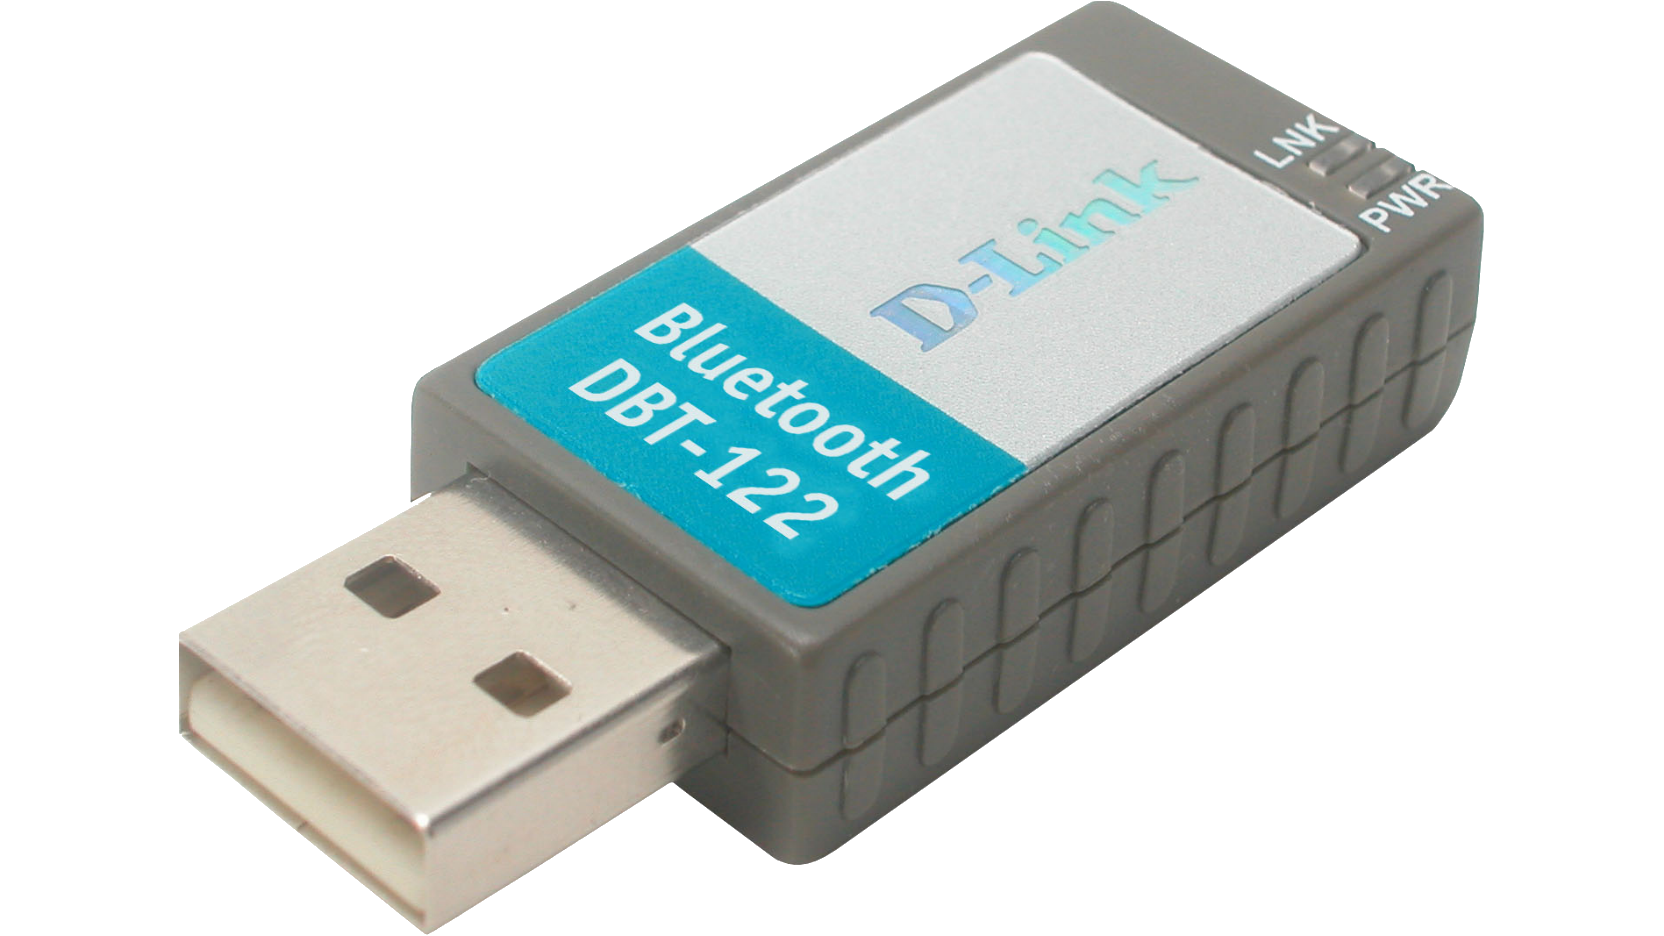 D LINK DBT 120 DRIVER FOR WINDOWS MAC